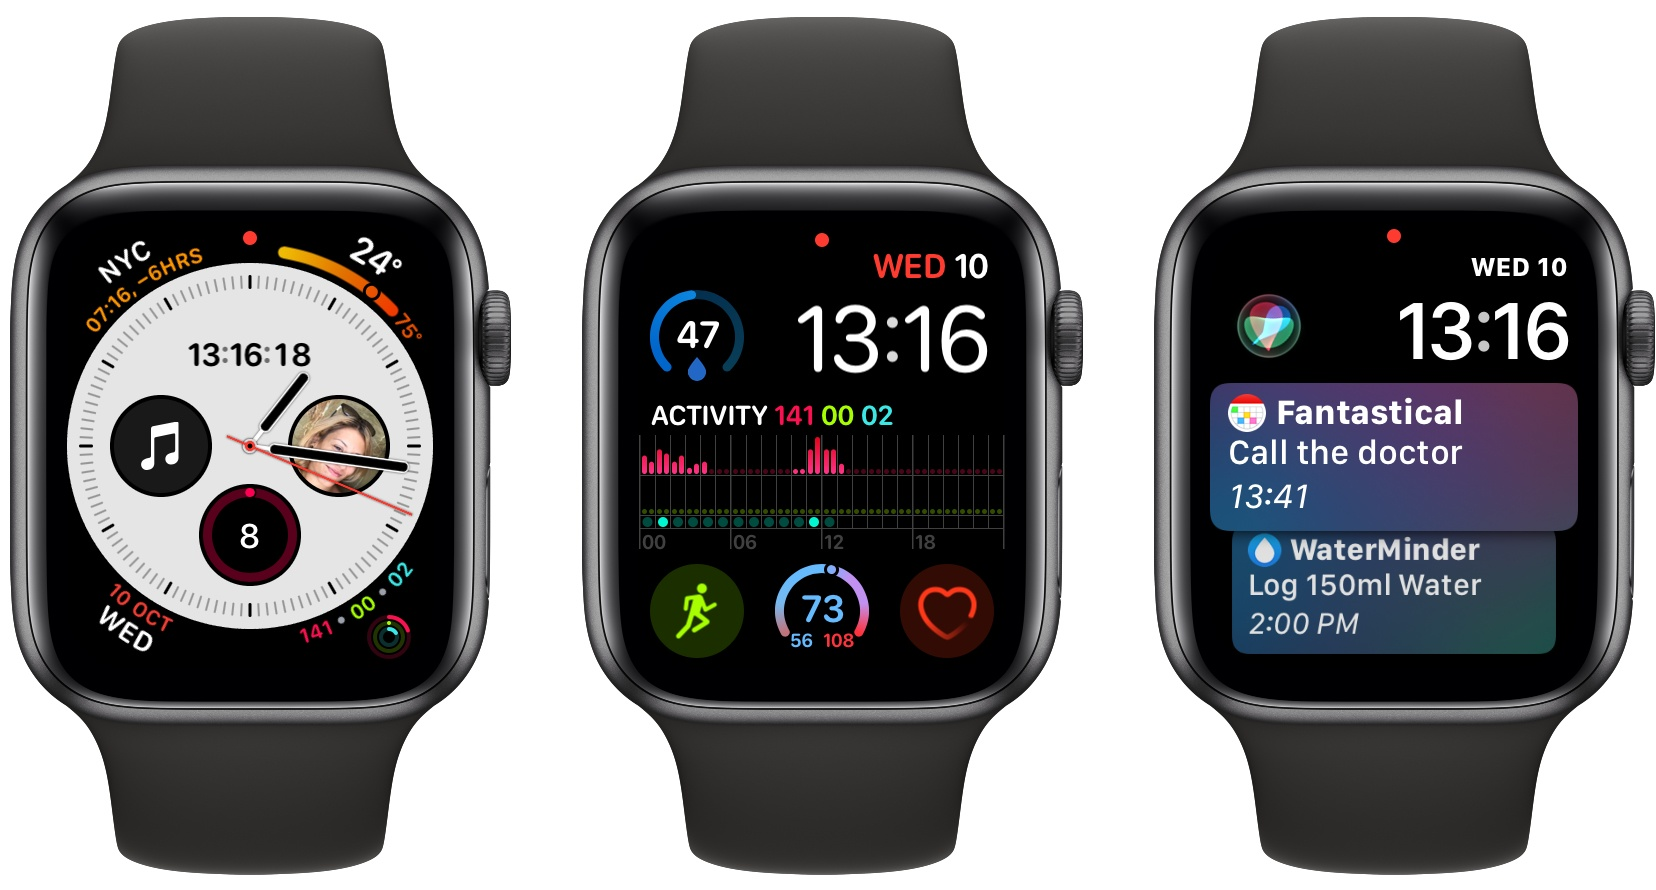 Apple Watch Series 4 screenshots, framed with Shortcuts.